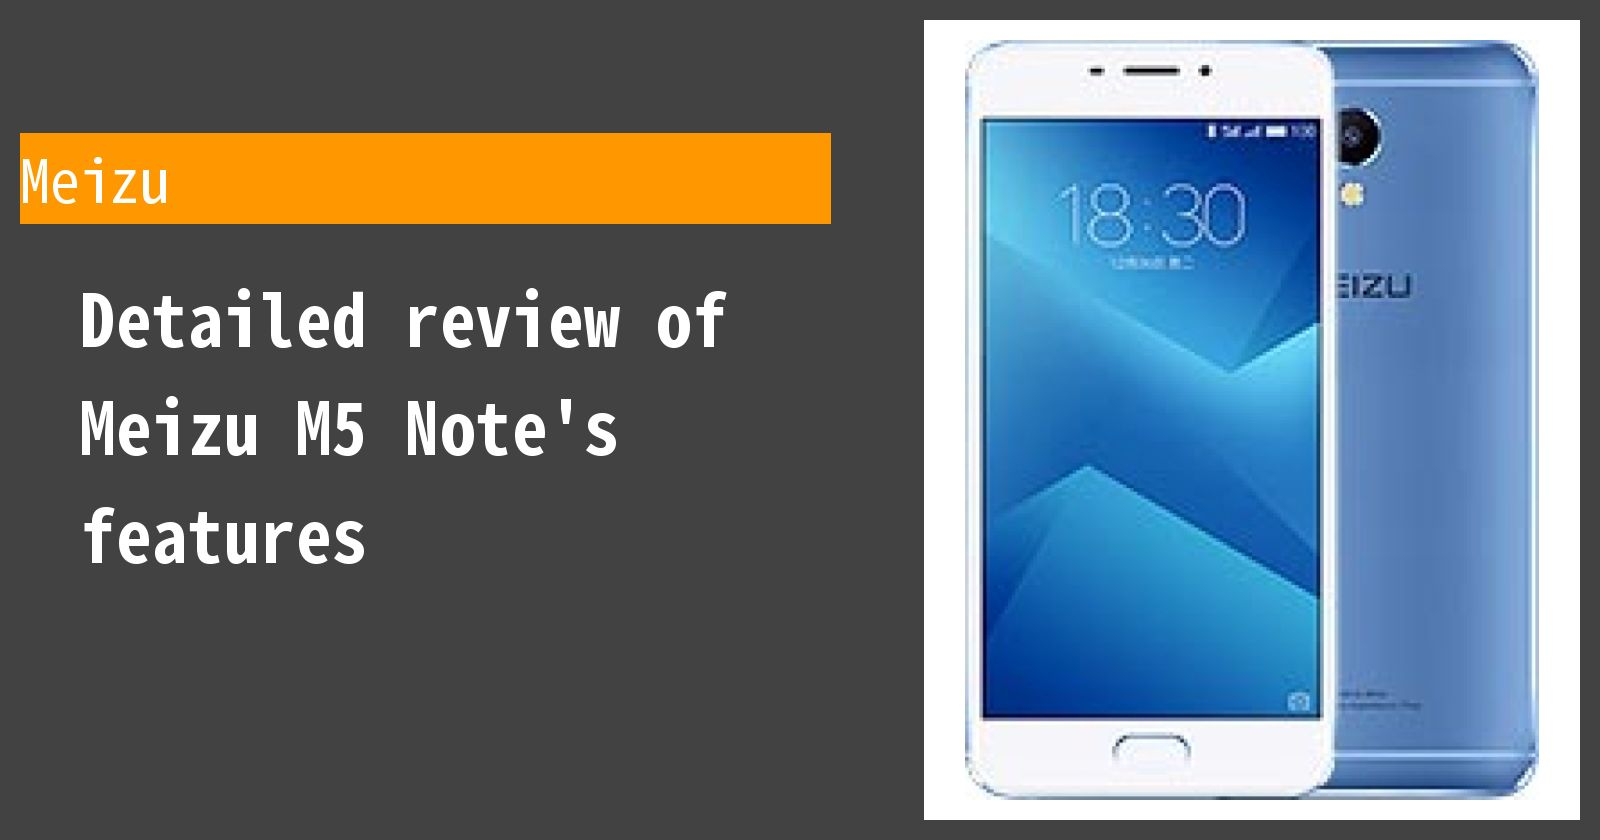 Detailed review of Meizu M5 Note's features